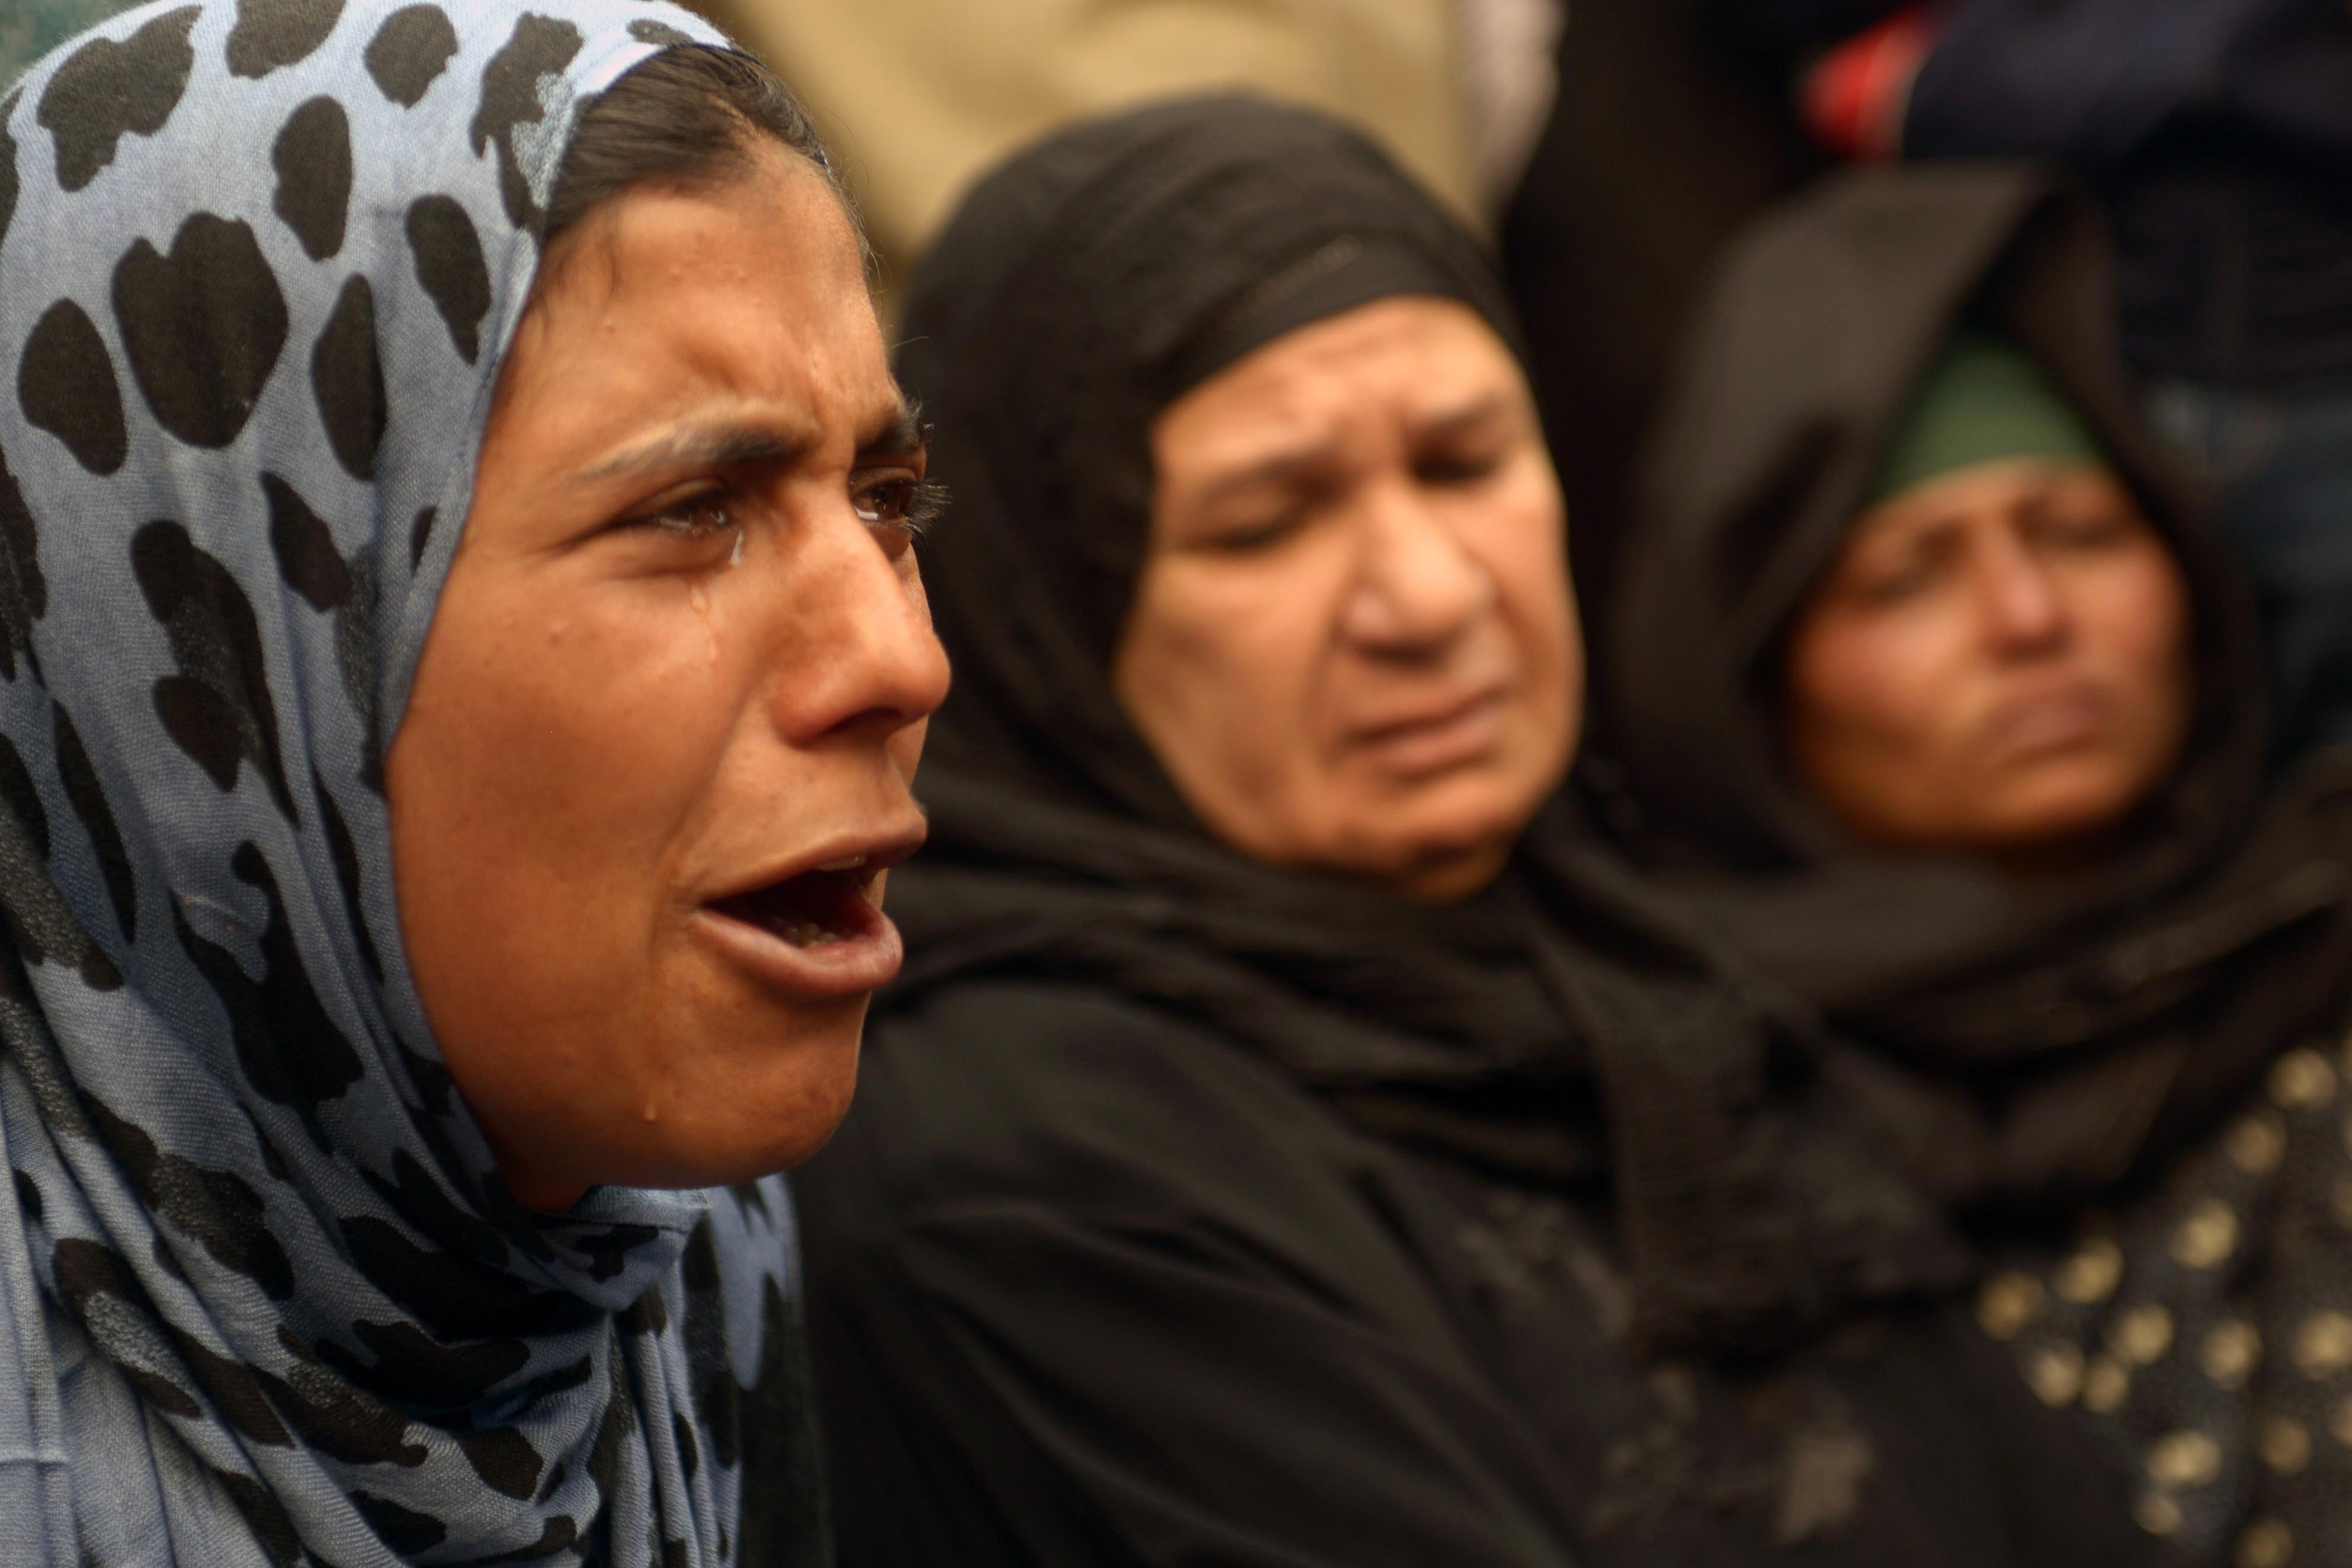 A relative of a supporter of Egyptian ousted Islamist president Mohamed Morsi cries outside the courthouse on March 25, 2014 in the central Egyptian city of Minya, during a session of the trial of some 700 Islamists charged with deadly rioting in an Egypt city. The court that the day before sentenced to death 529 alleged supporters of Morsi will sentence nearly 700 more on April 28, a lawyer said, after the hearing was adjourned.  (AFP PHOTO / STR)